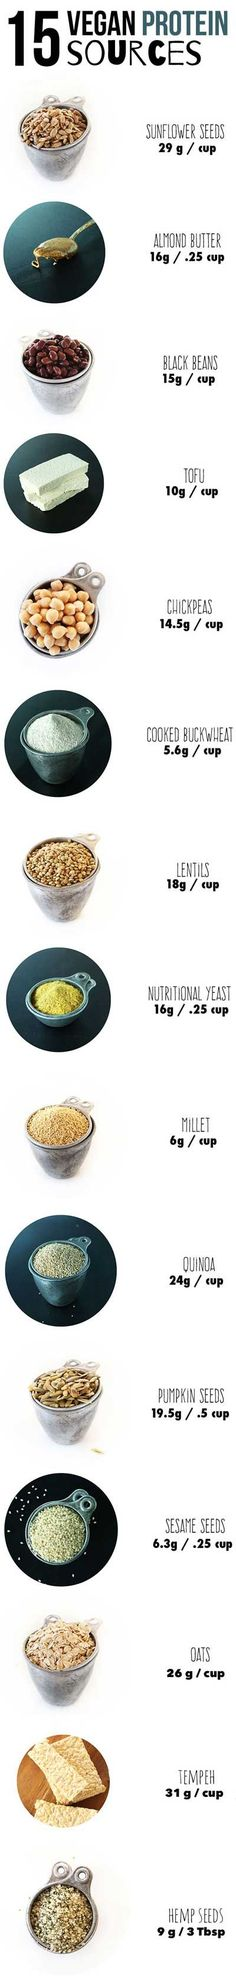 Sunflower seeds are a fantastic source of protein